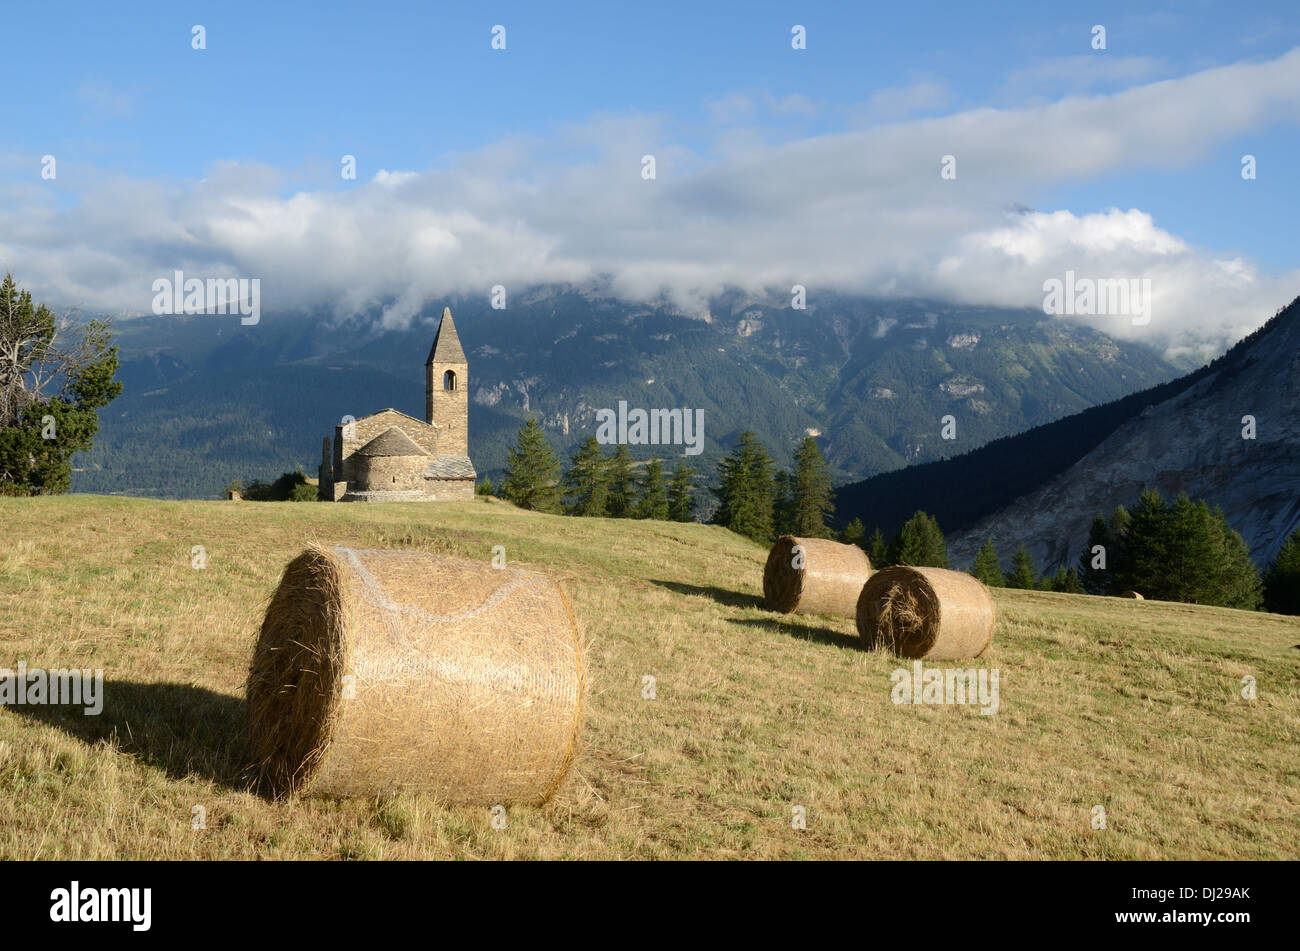 Hay Bales in front of Eglise St-Pierre Extravache & Vanoise National Park Bramans Haute Maurienne Savoie France - Stock Image